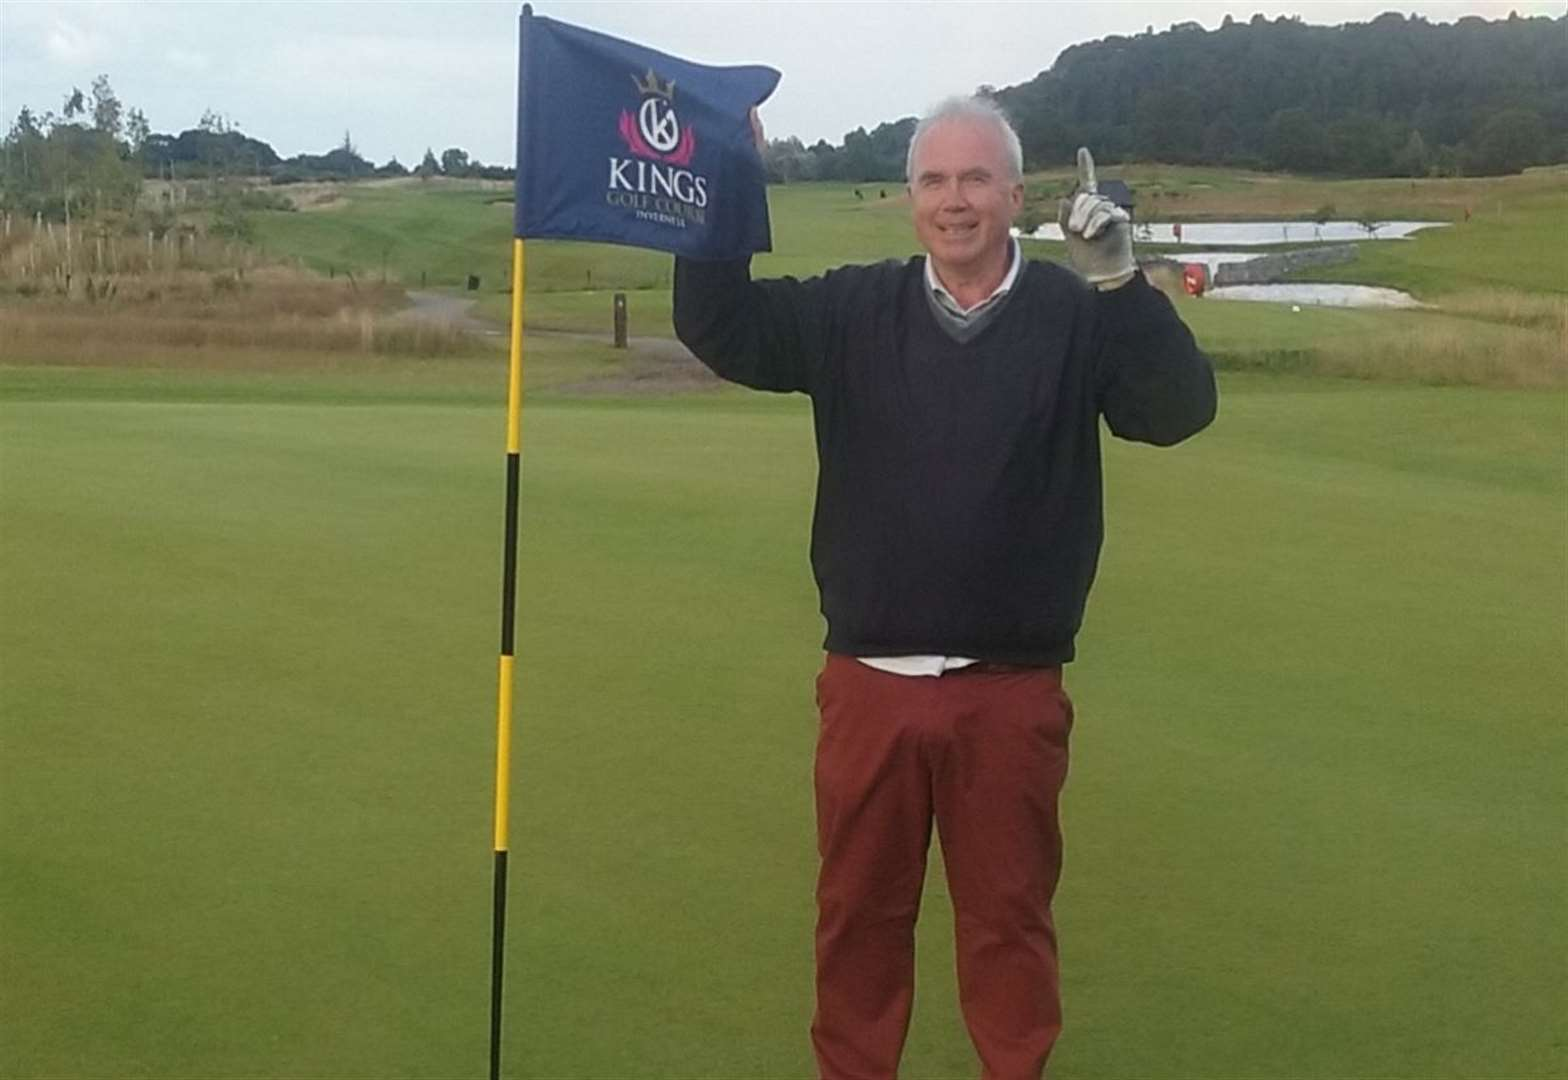 Crowning glory for Inverness golfer at Kings